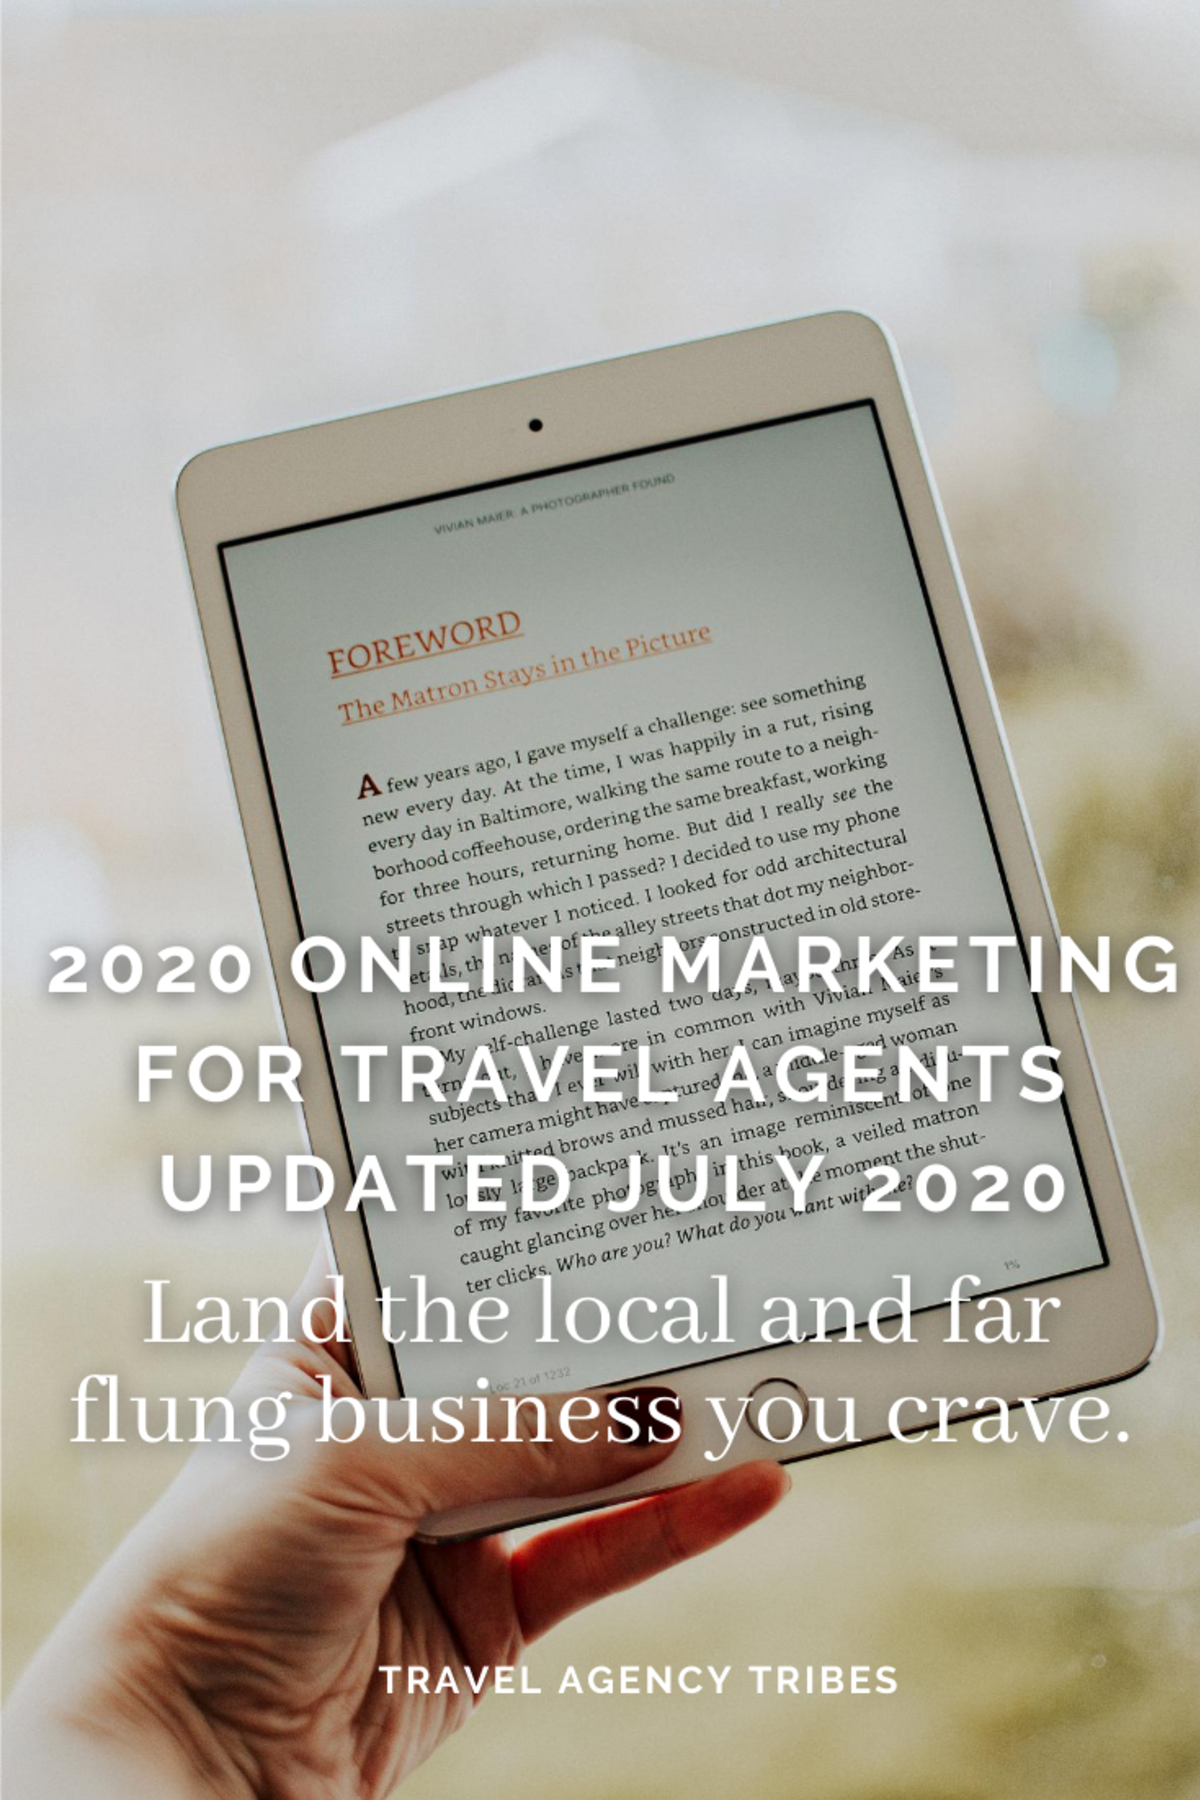 Online Marketing for Travel Agents